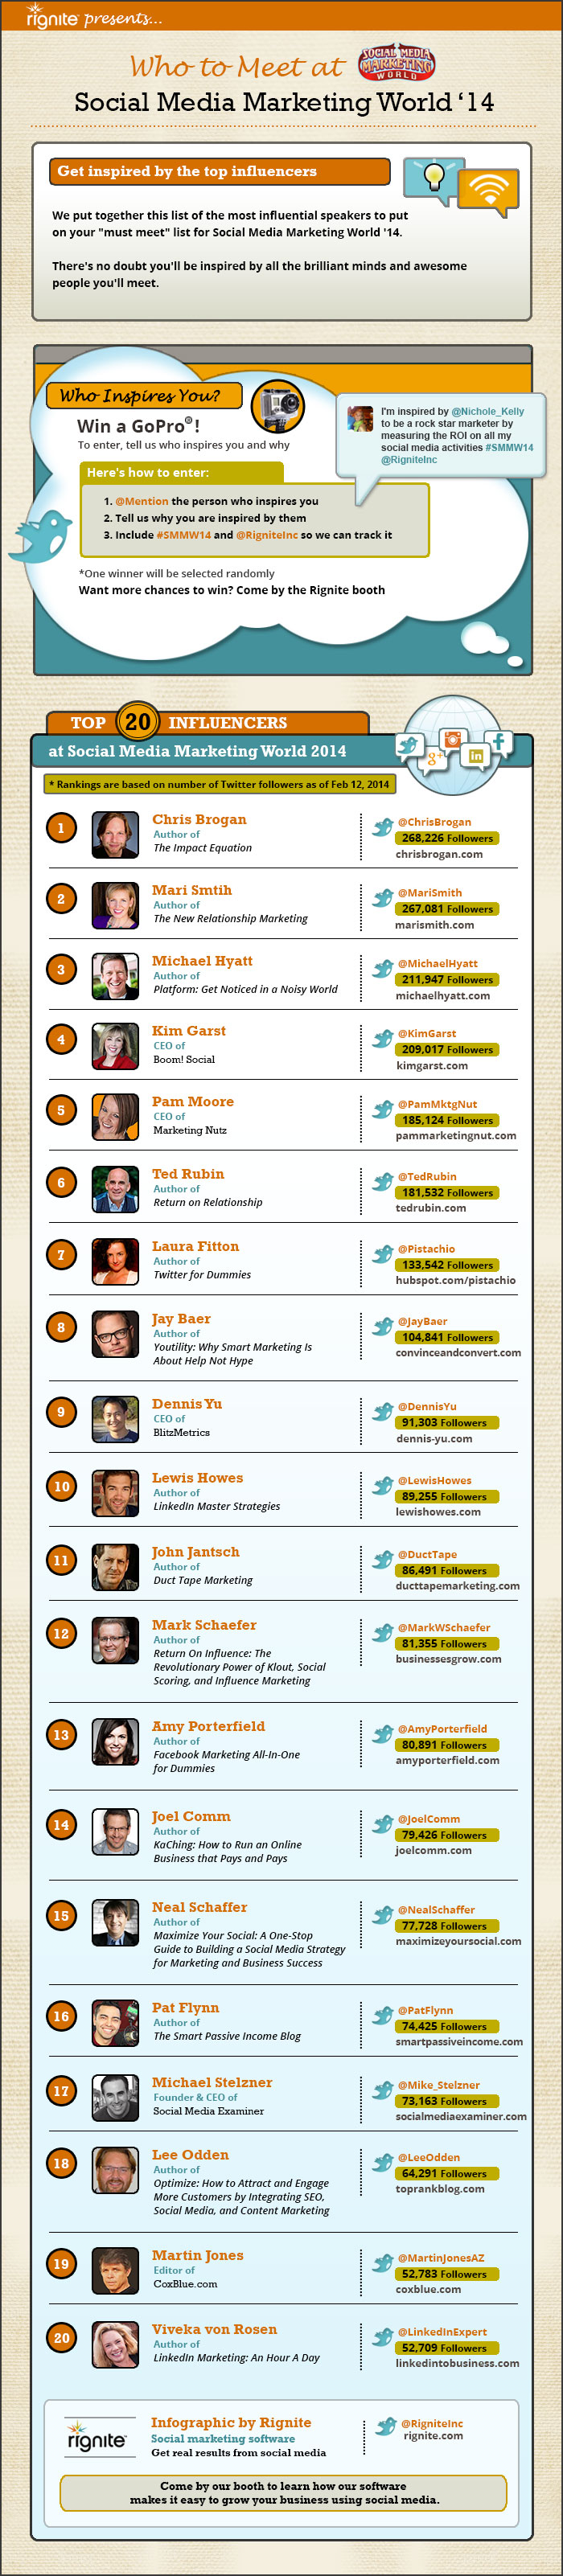 Who to Meet at #SMMW14 Infographic via @RigniteInc